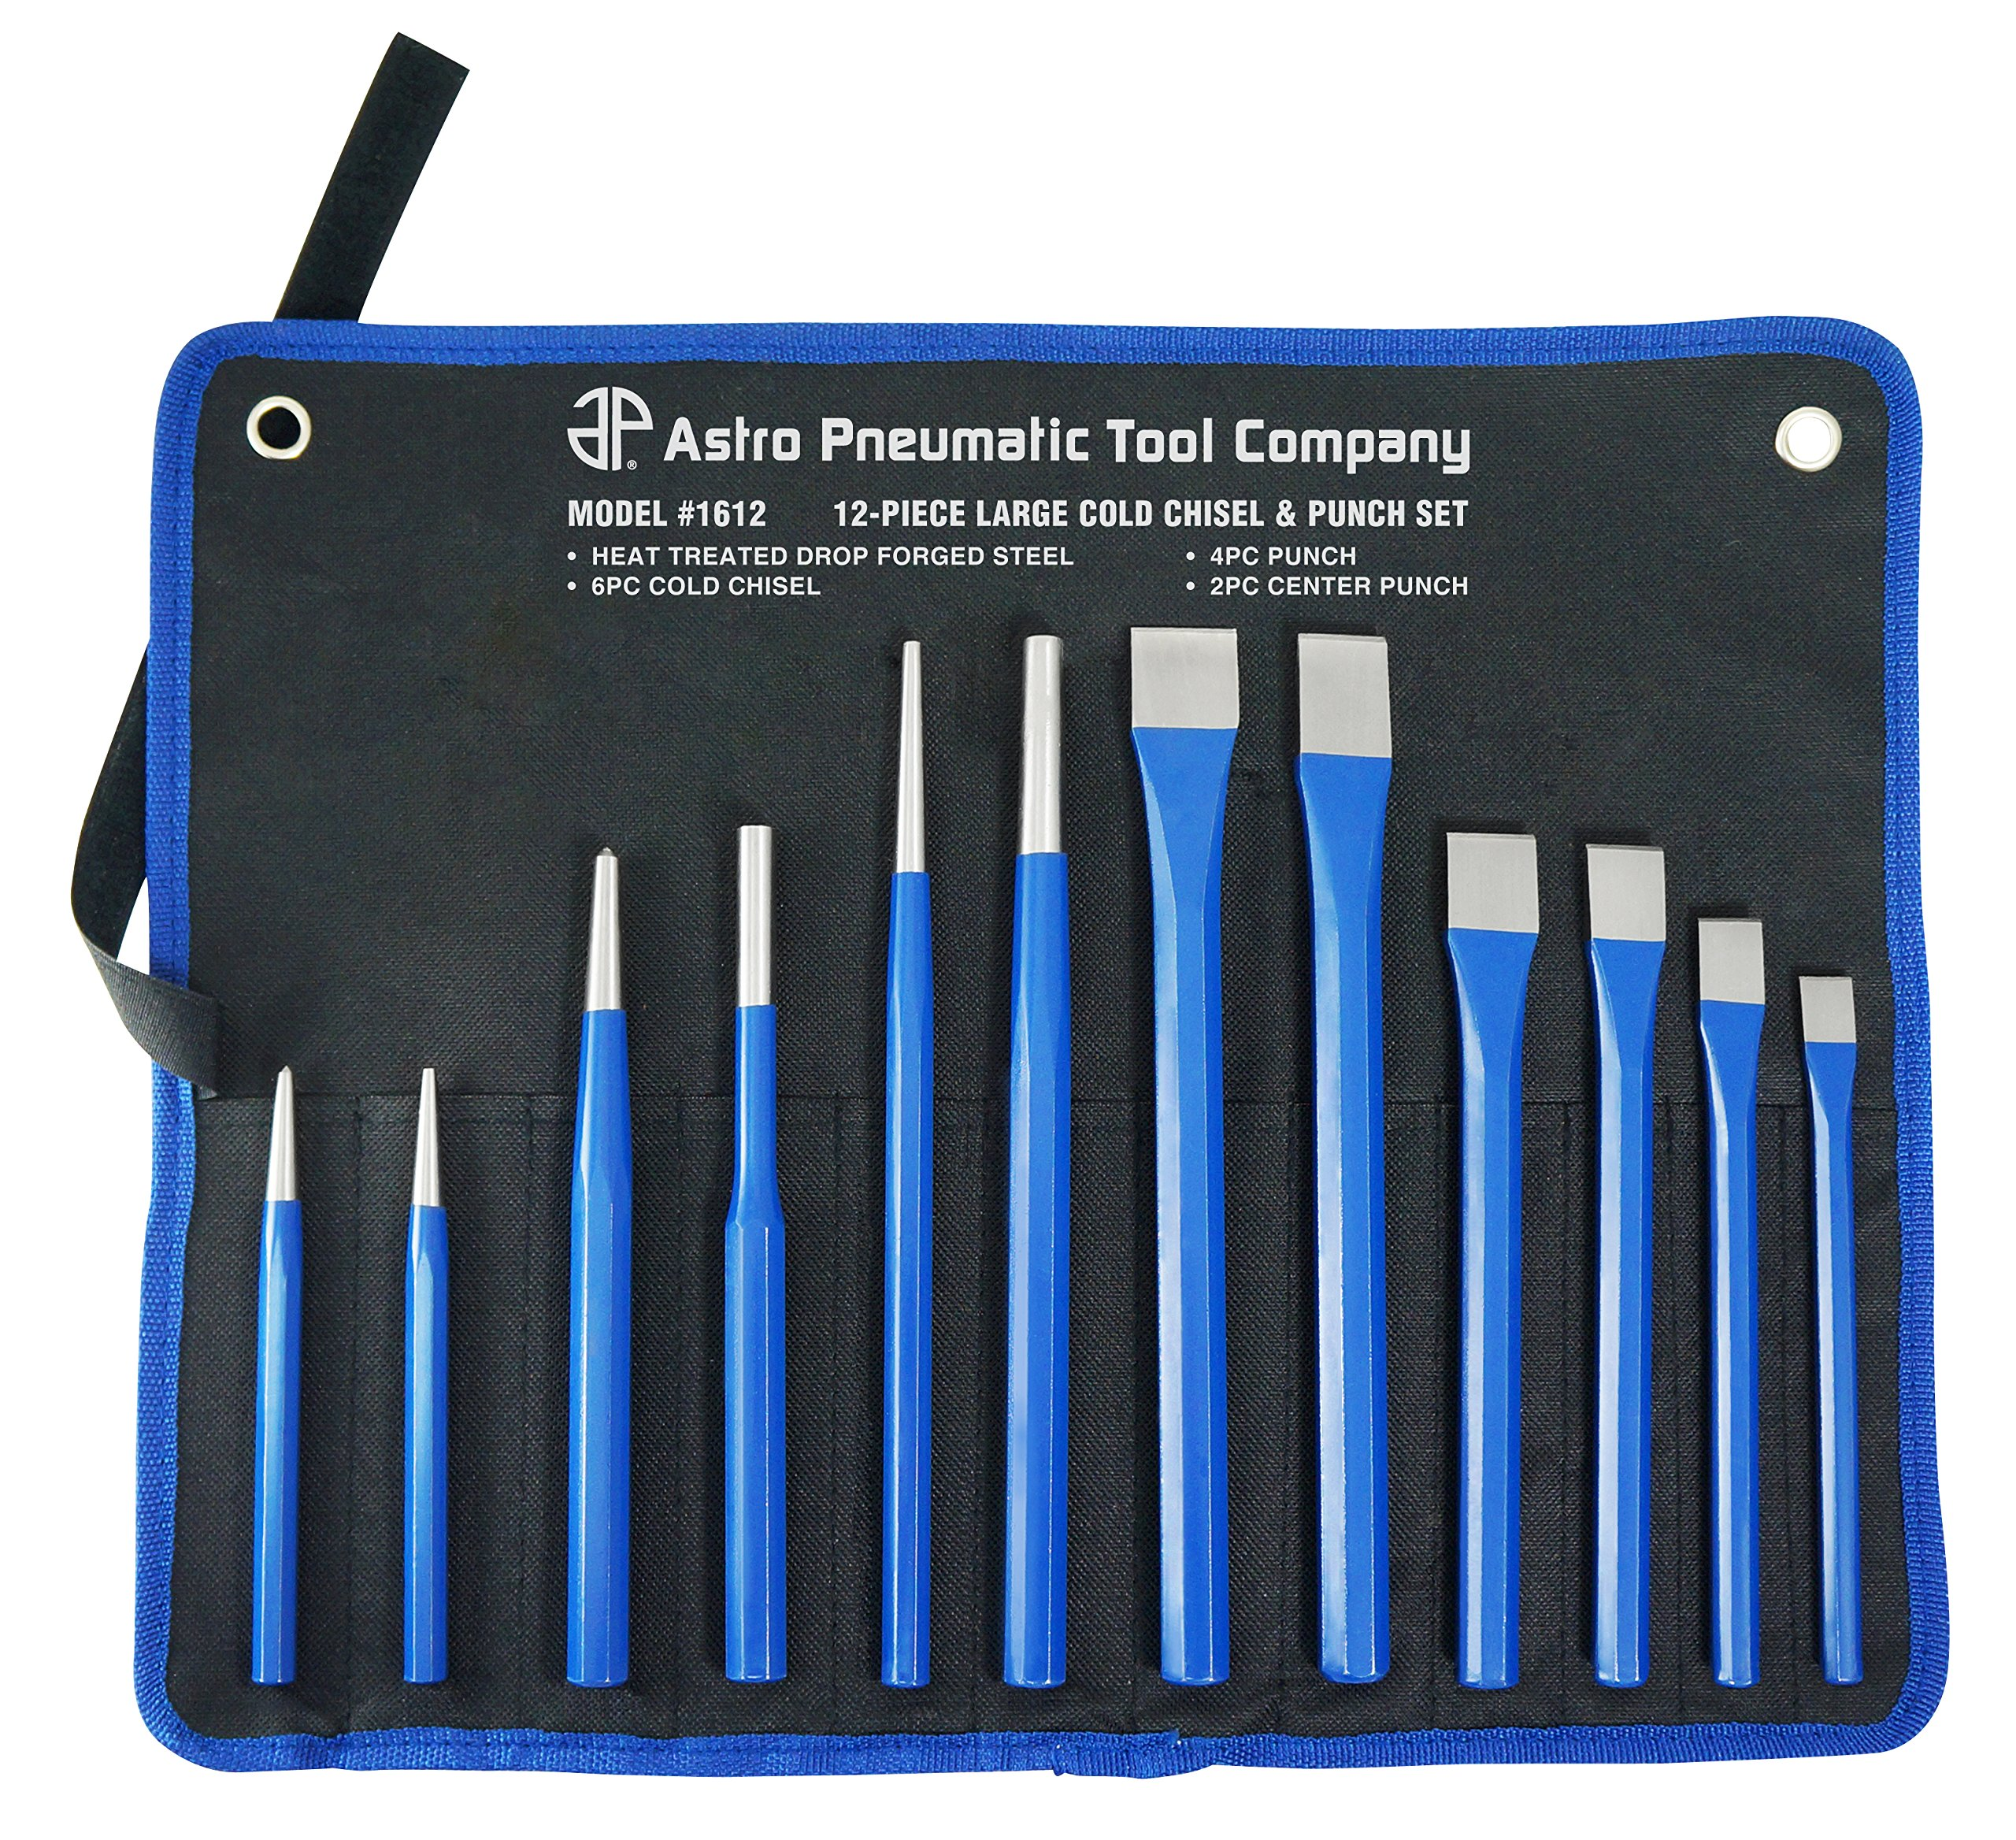 Astro Pneumatic Tool 1612 Large Cold Chisel & Punch Set, 12 Piece by Astro Pneumatic Tool